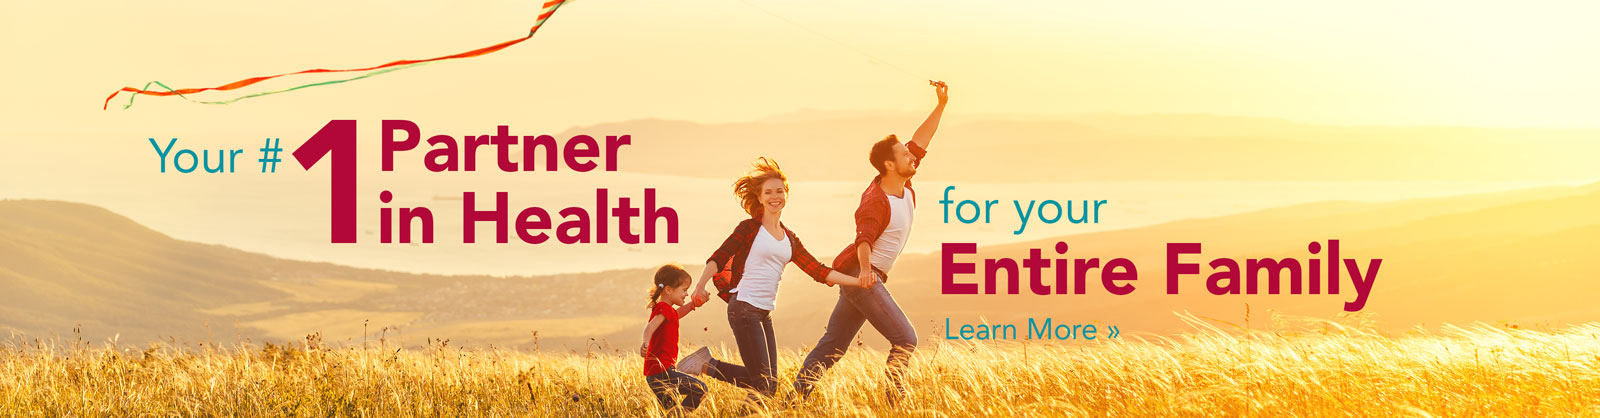 Your #1 Partner in Health banner